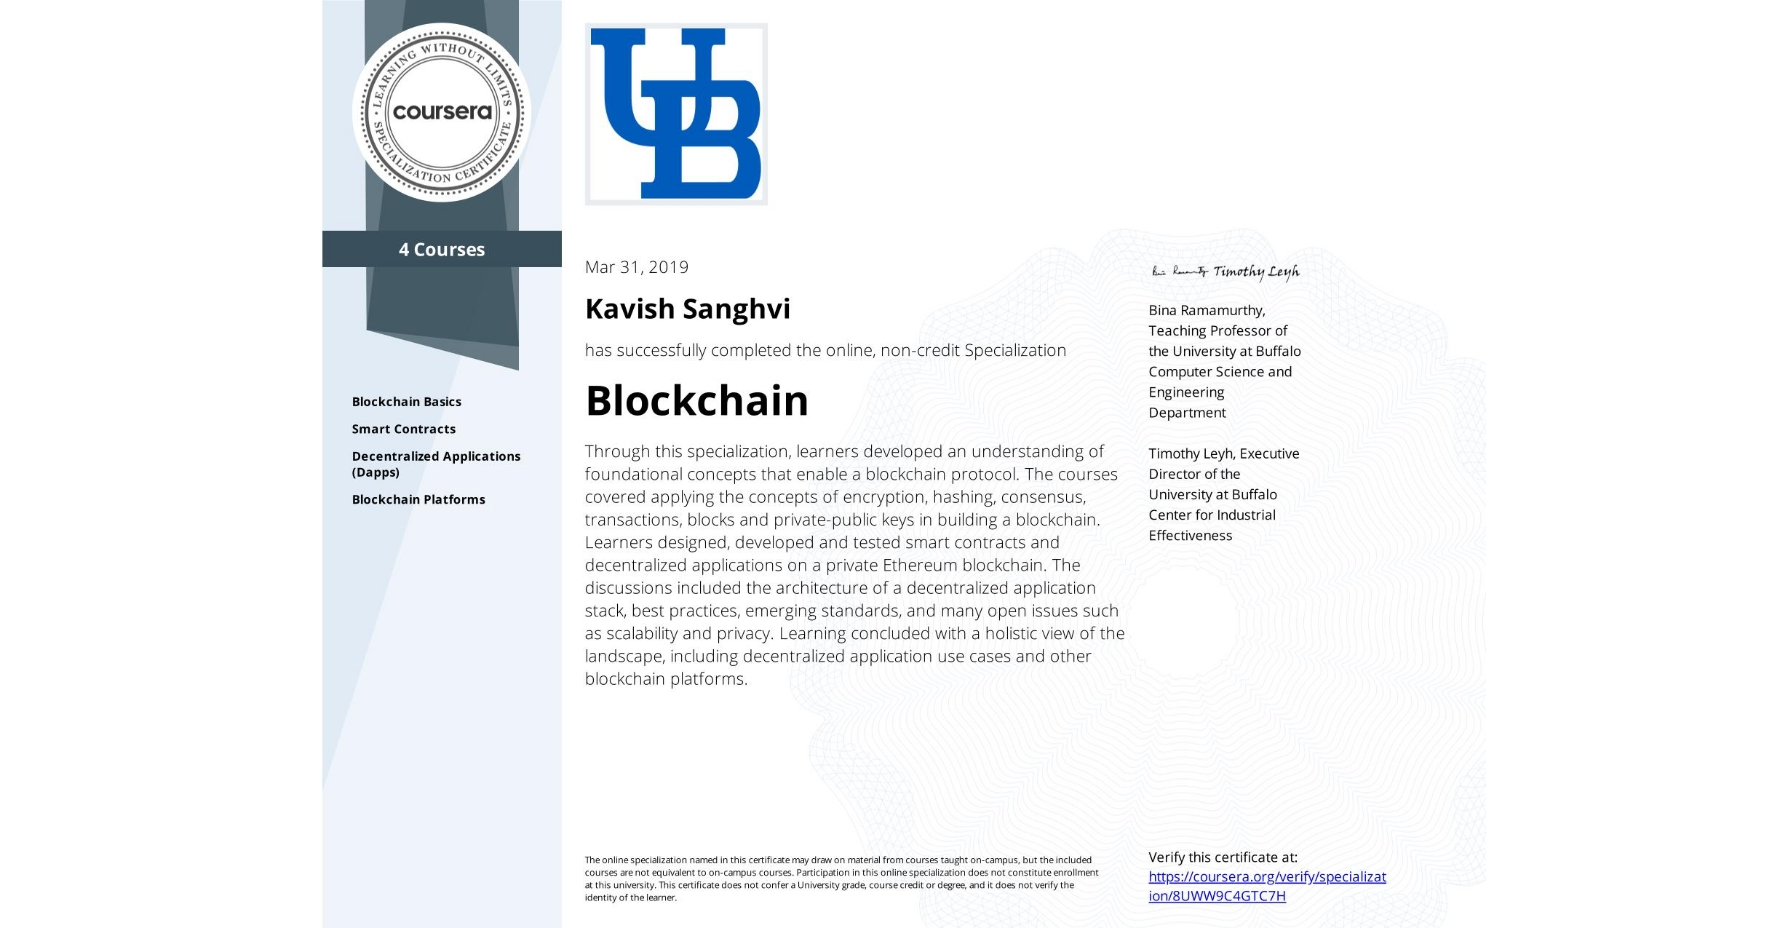 View certificate for Kavish Sanghvi, Blockchain, offered through Coursera. Through this specialization, learners developed an understanding of foundational concepts that enable a blockchain protocol. The courses covered applying the concepts of encryption, hashing, consensus, transactions, blocks and private-public keys in building a blockchain. Learners designed, developed and tested smart contracts and decentralized applications on a private Ethereum blockchain. The discussions included the architecture of a decentralized application stack, best practices, emerging standards, and many open issues such as scalability and privacy. Learning concluded with a holistic view of the landscape, including decentralized application use cases and other blockchain platforms.